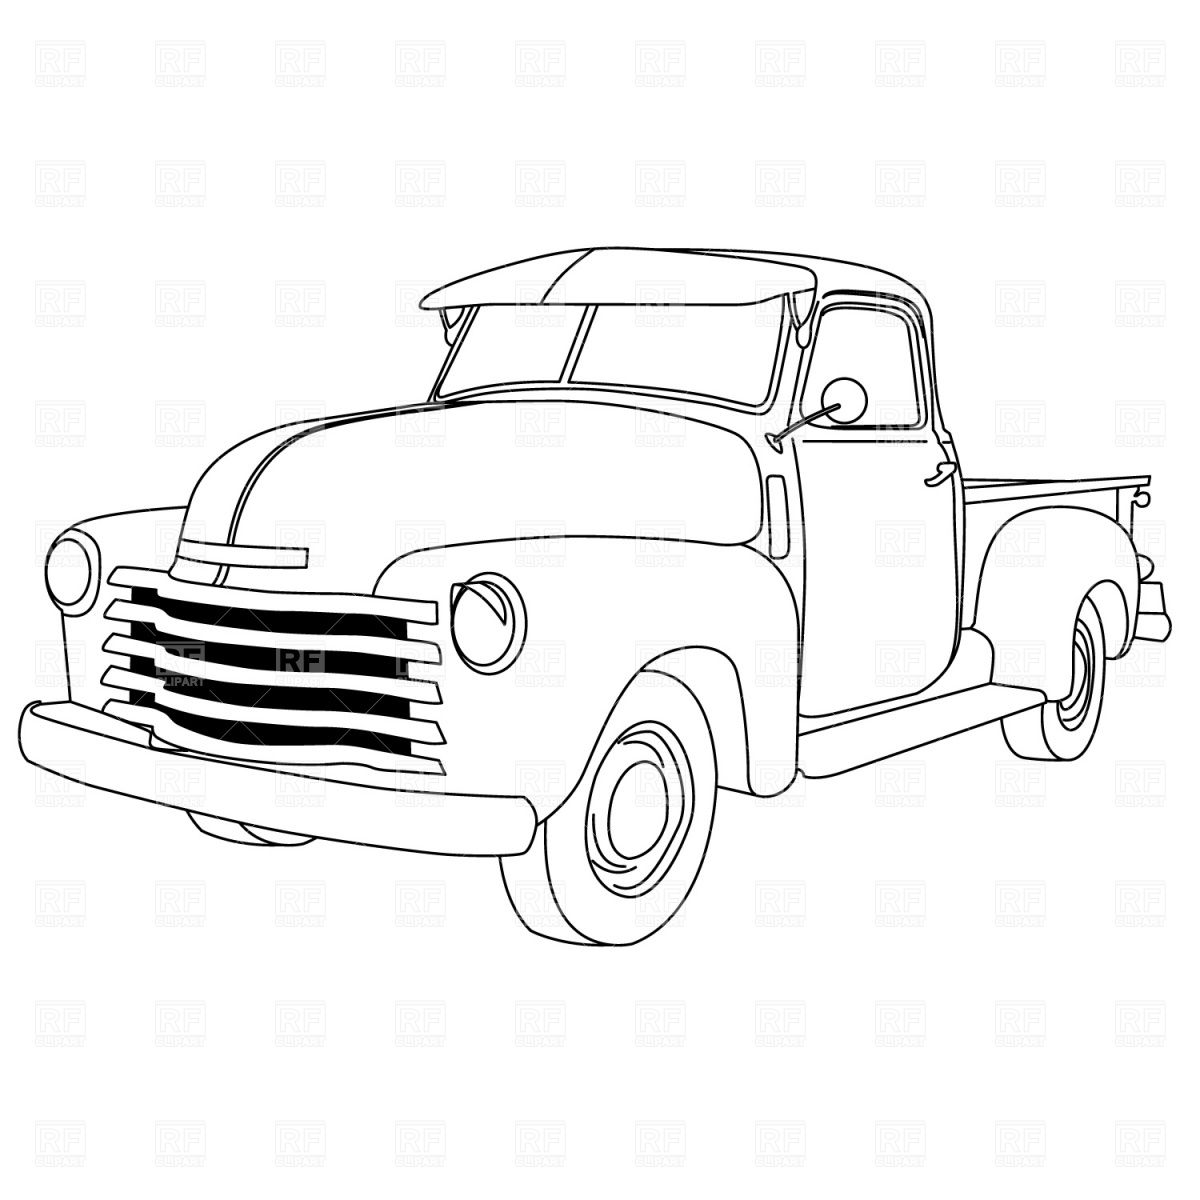 Old Pickup Truck Coloring Pages | Red truck | Pinterest | Embroidery ...